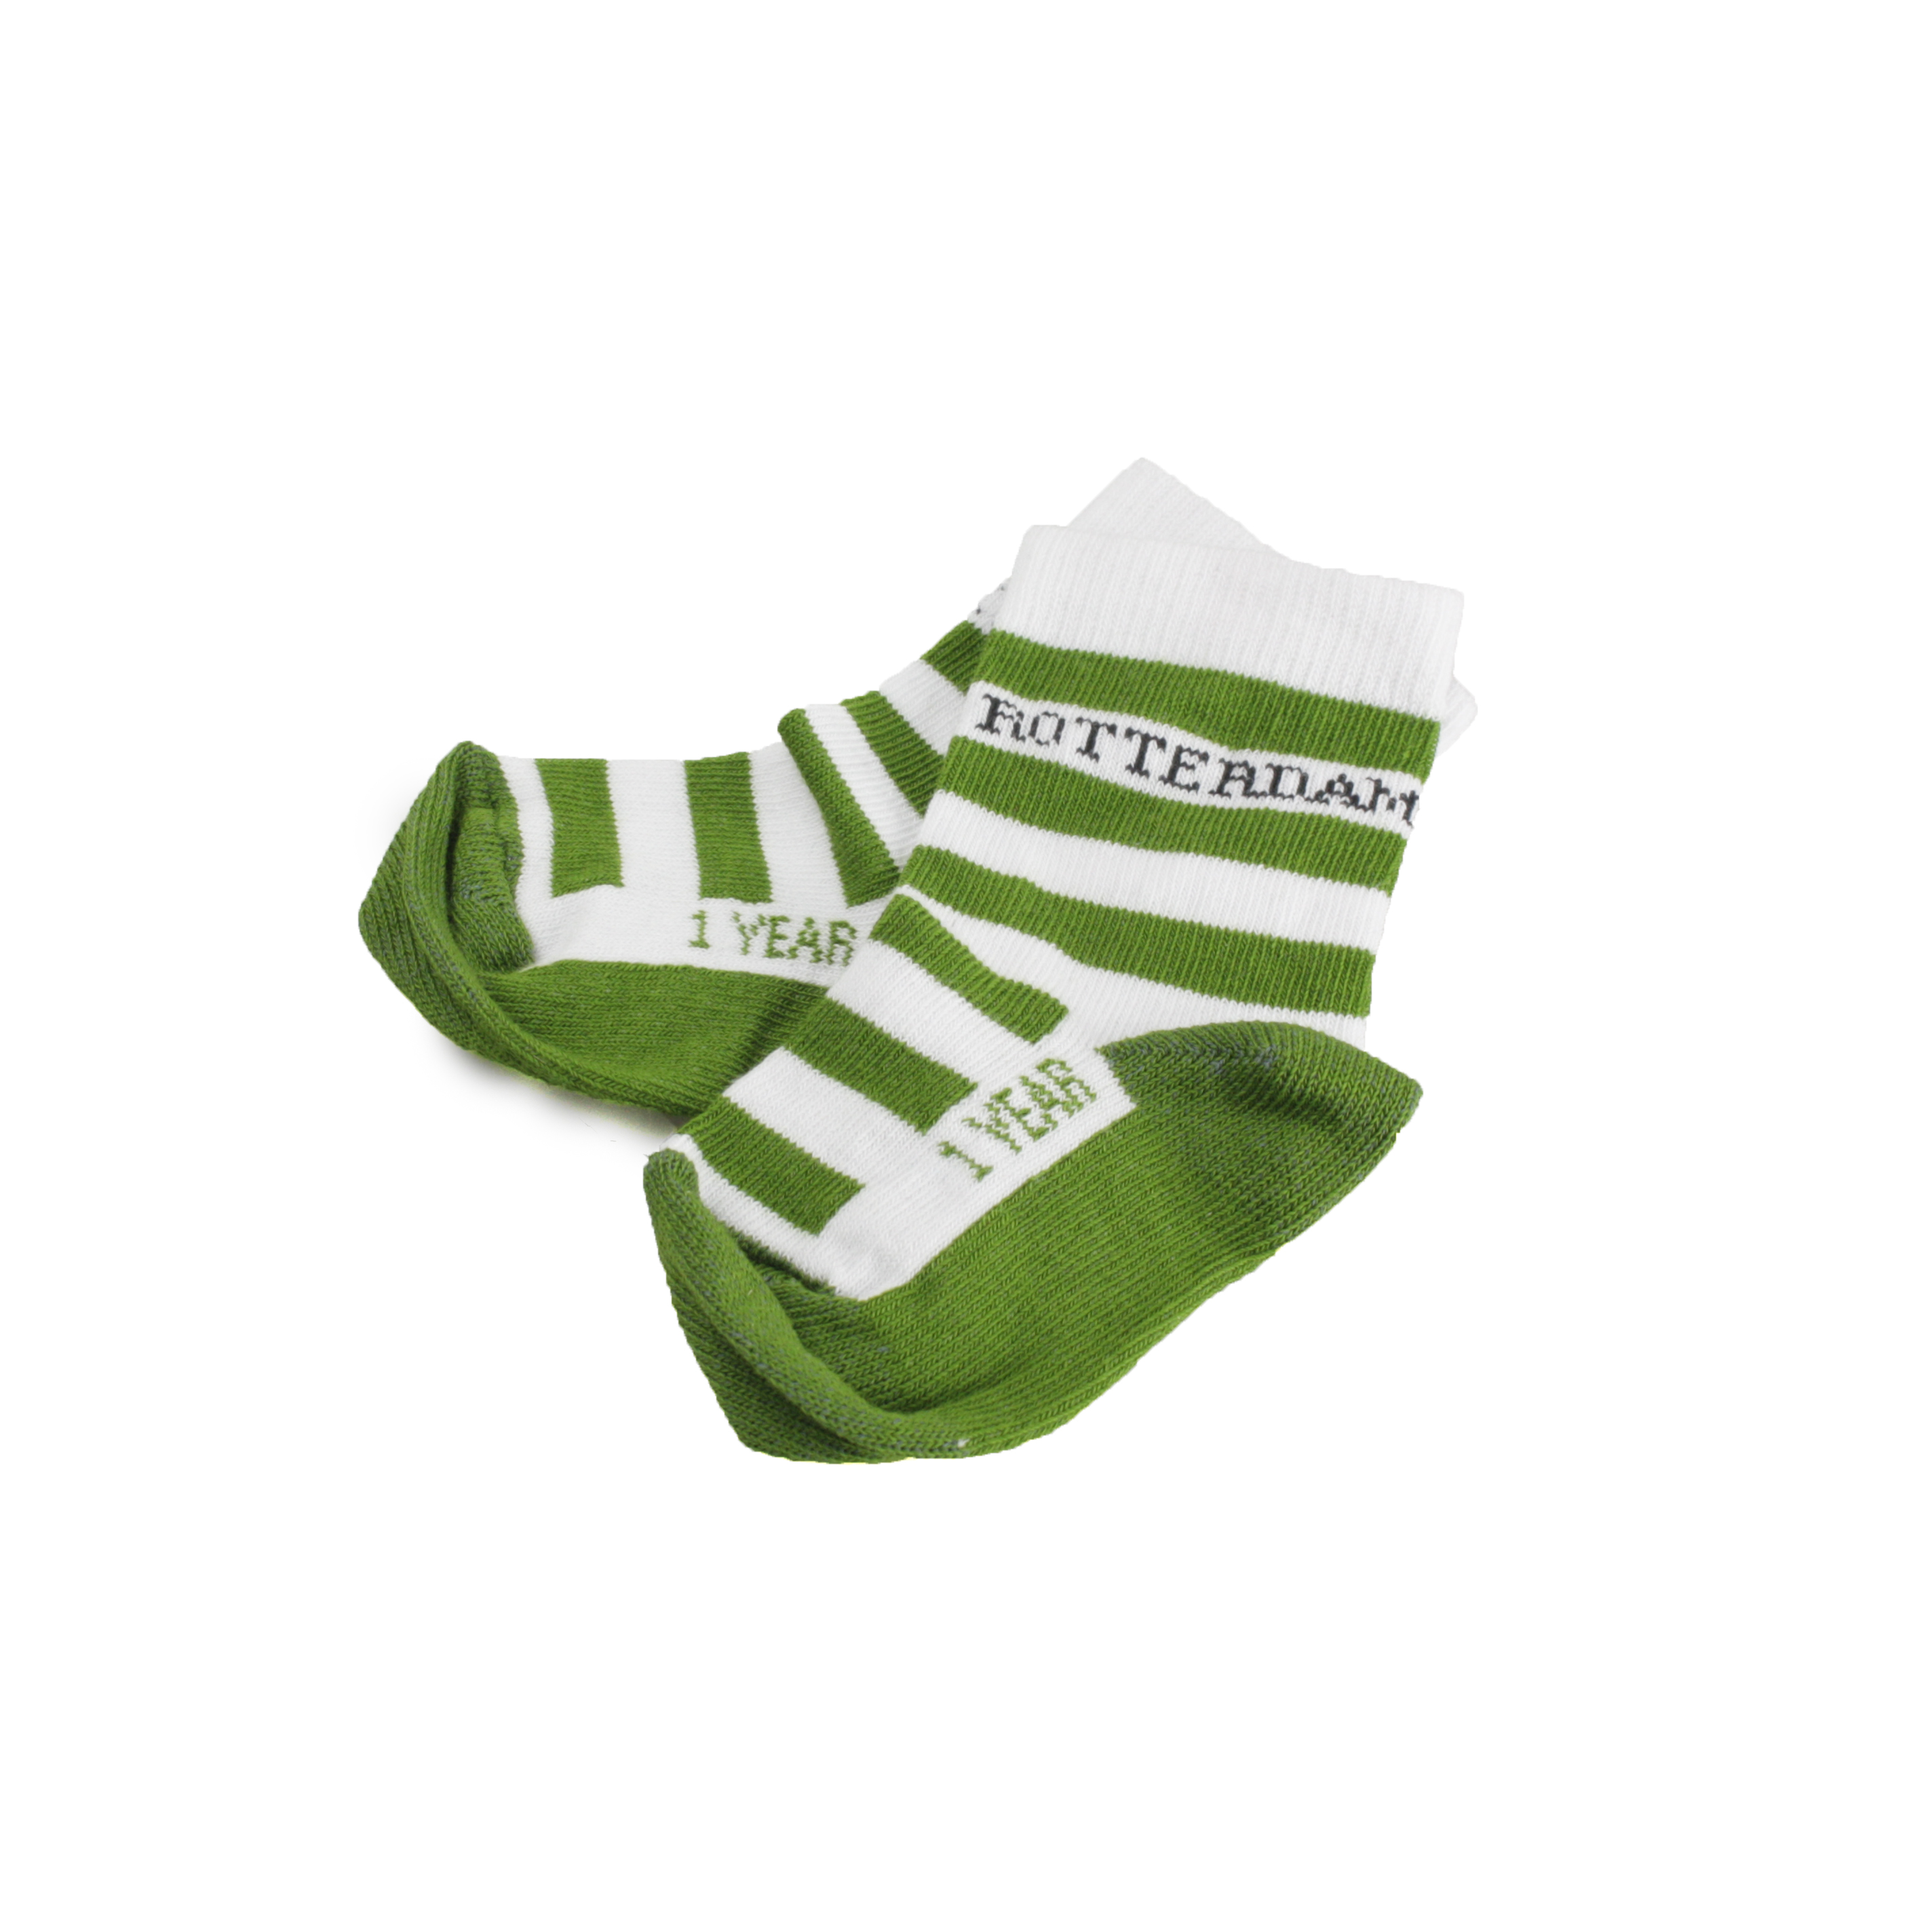 Baby and Kids' socks with logo